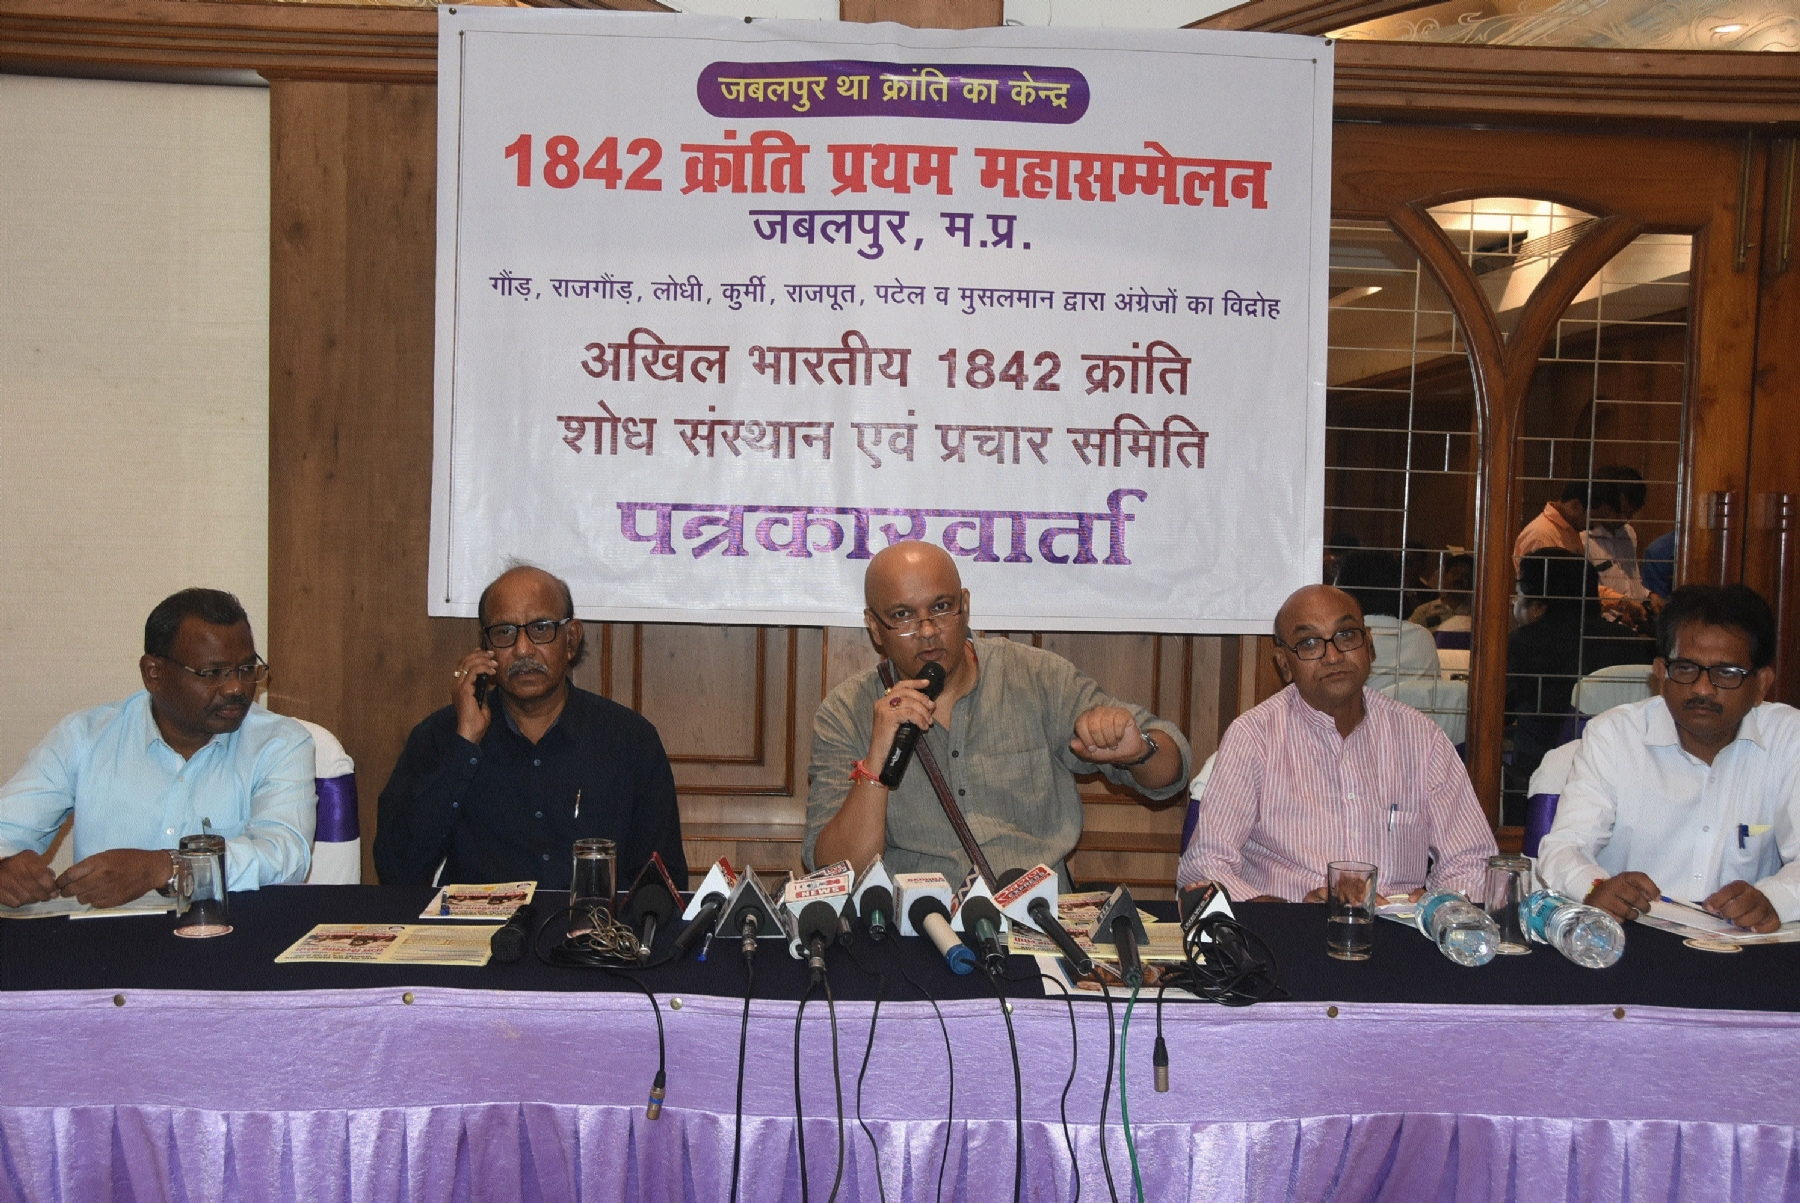 1842 Kranti Mahasammelan at Dadda Parisar on Sept 2